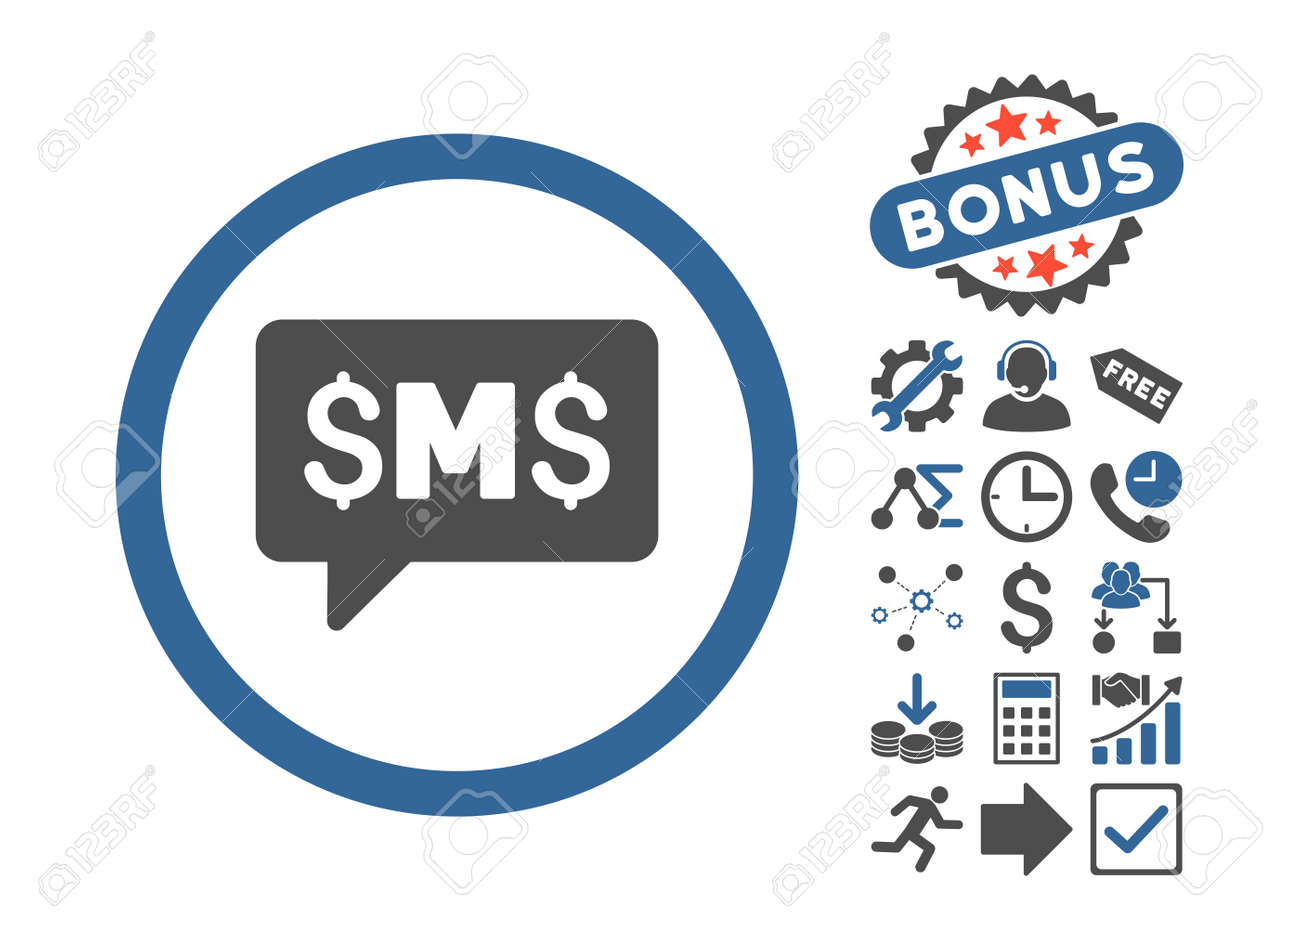 Sms message icon with bonus pictures vector illustration style sms message icon with bonus pictures vector illustration style is flat iconic bicolor symbols biocorpaavc Images